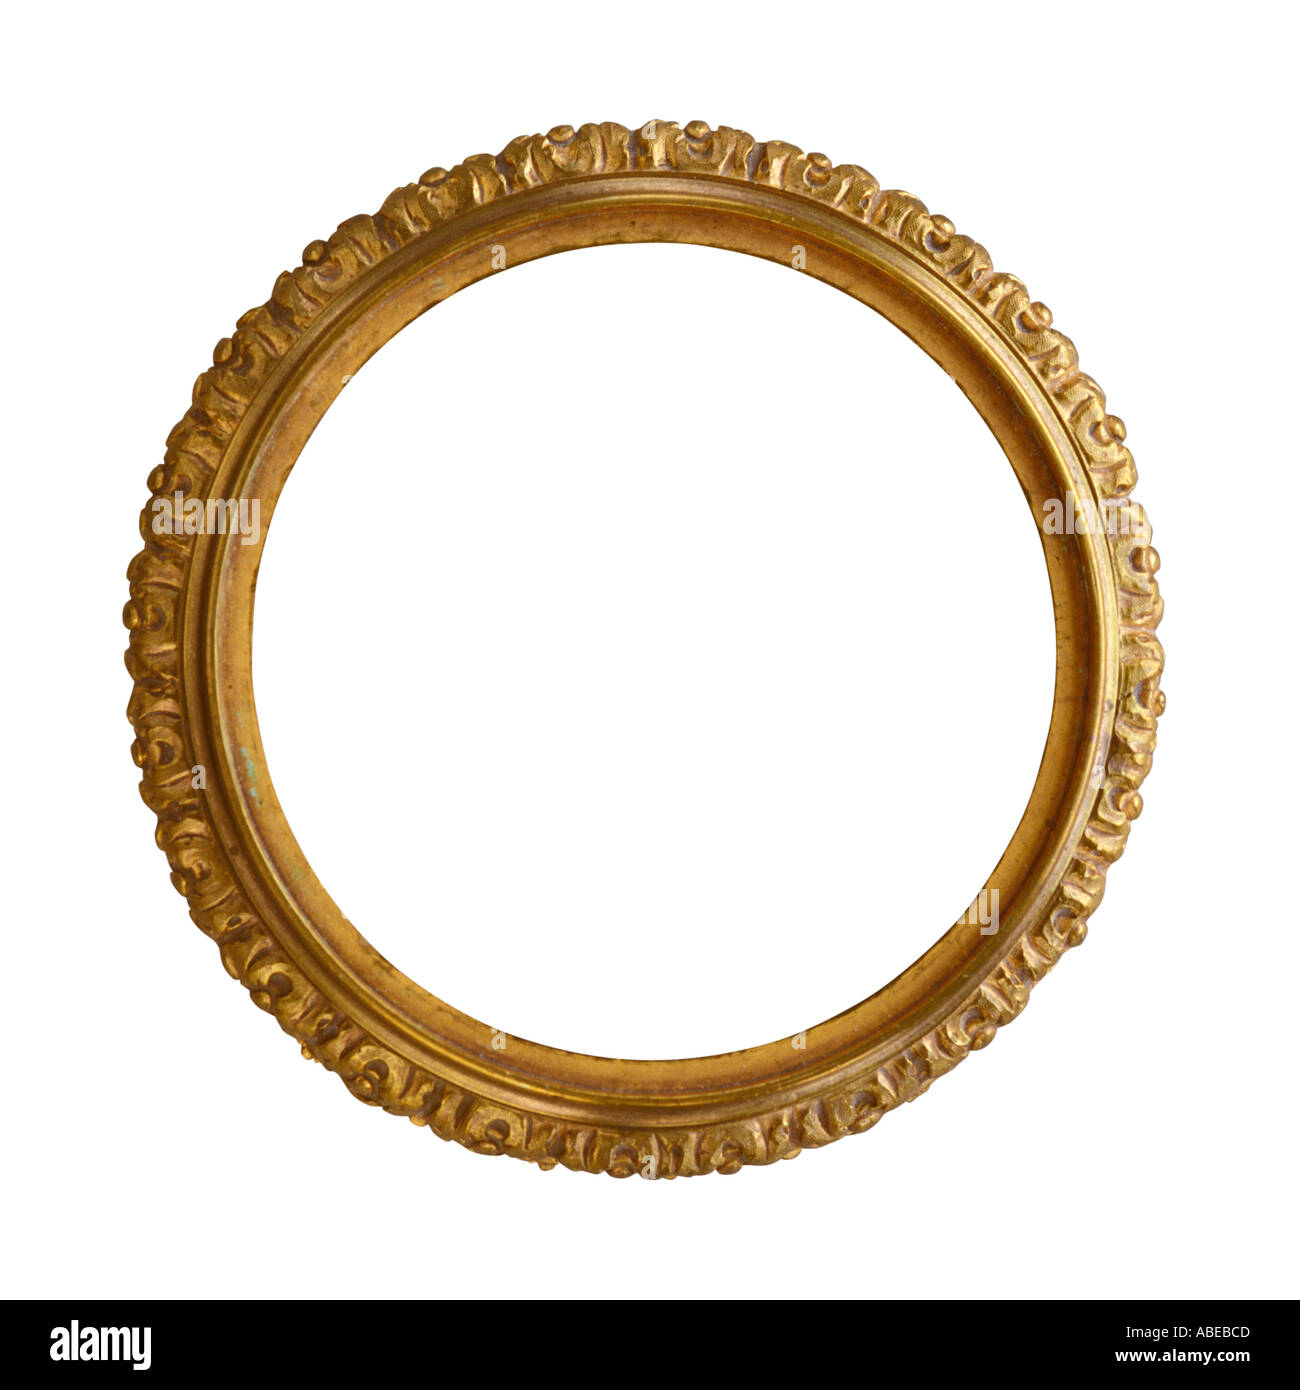 Gild Picture Frames Stock Photos & Gild Picture Frames Stock Images ...